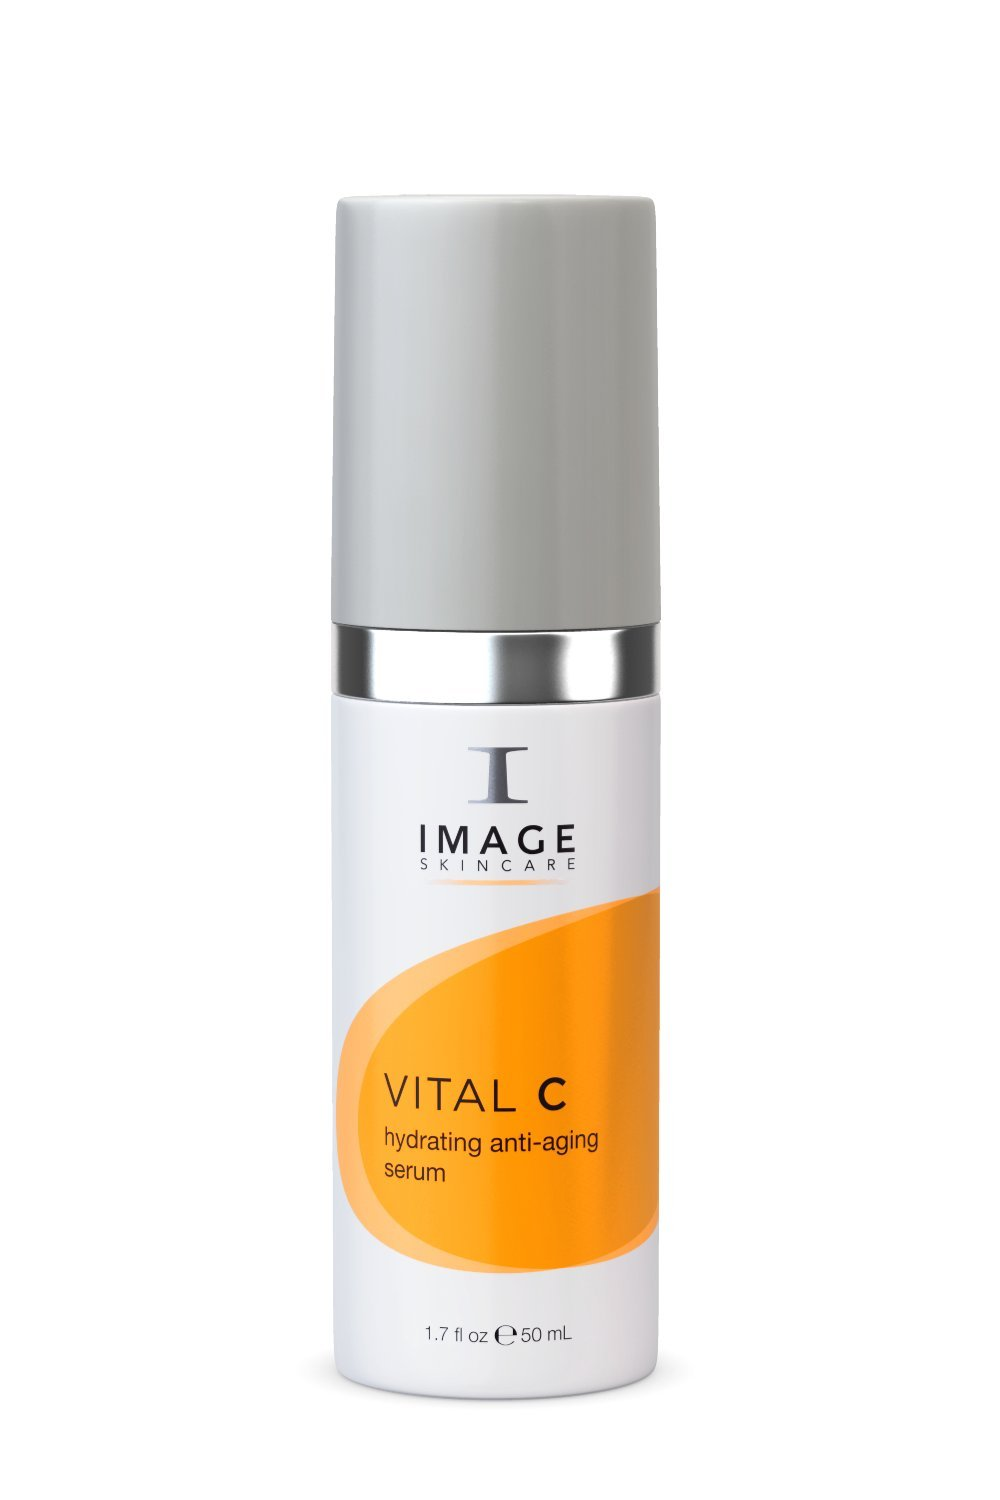 Image skincare Vital C Hydrating Anti Aging Serum, 1.7 Fluid Ounce IL-104N